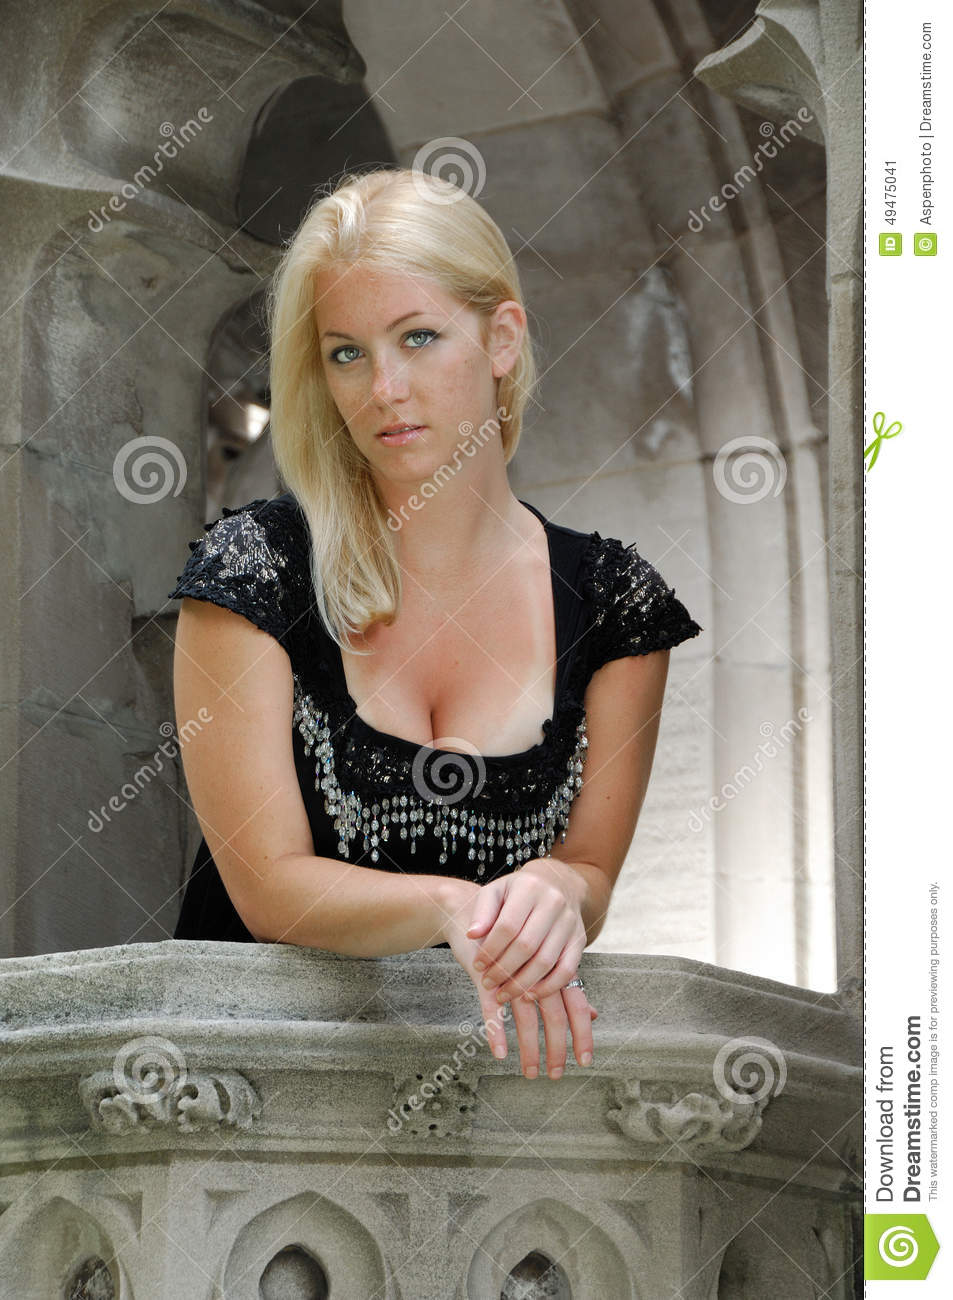 Stunning young blonde woman vintage themed shoot stock for Balcony models